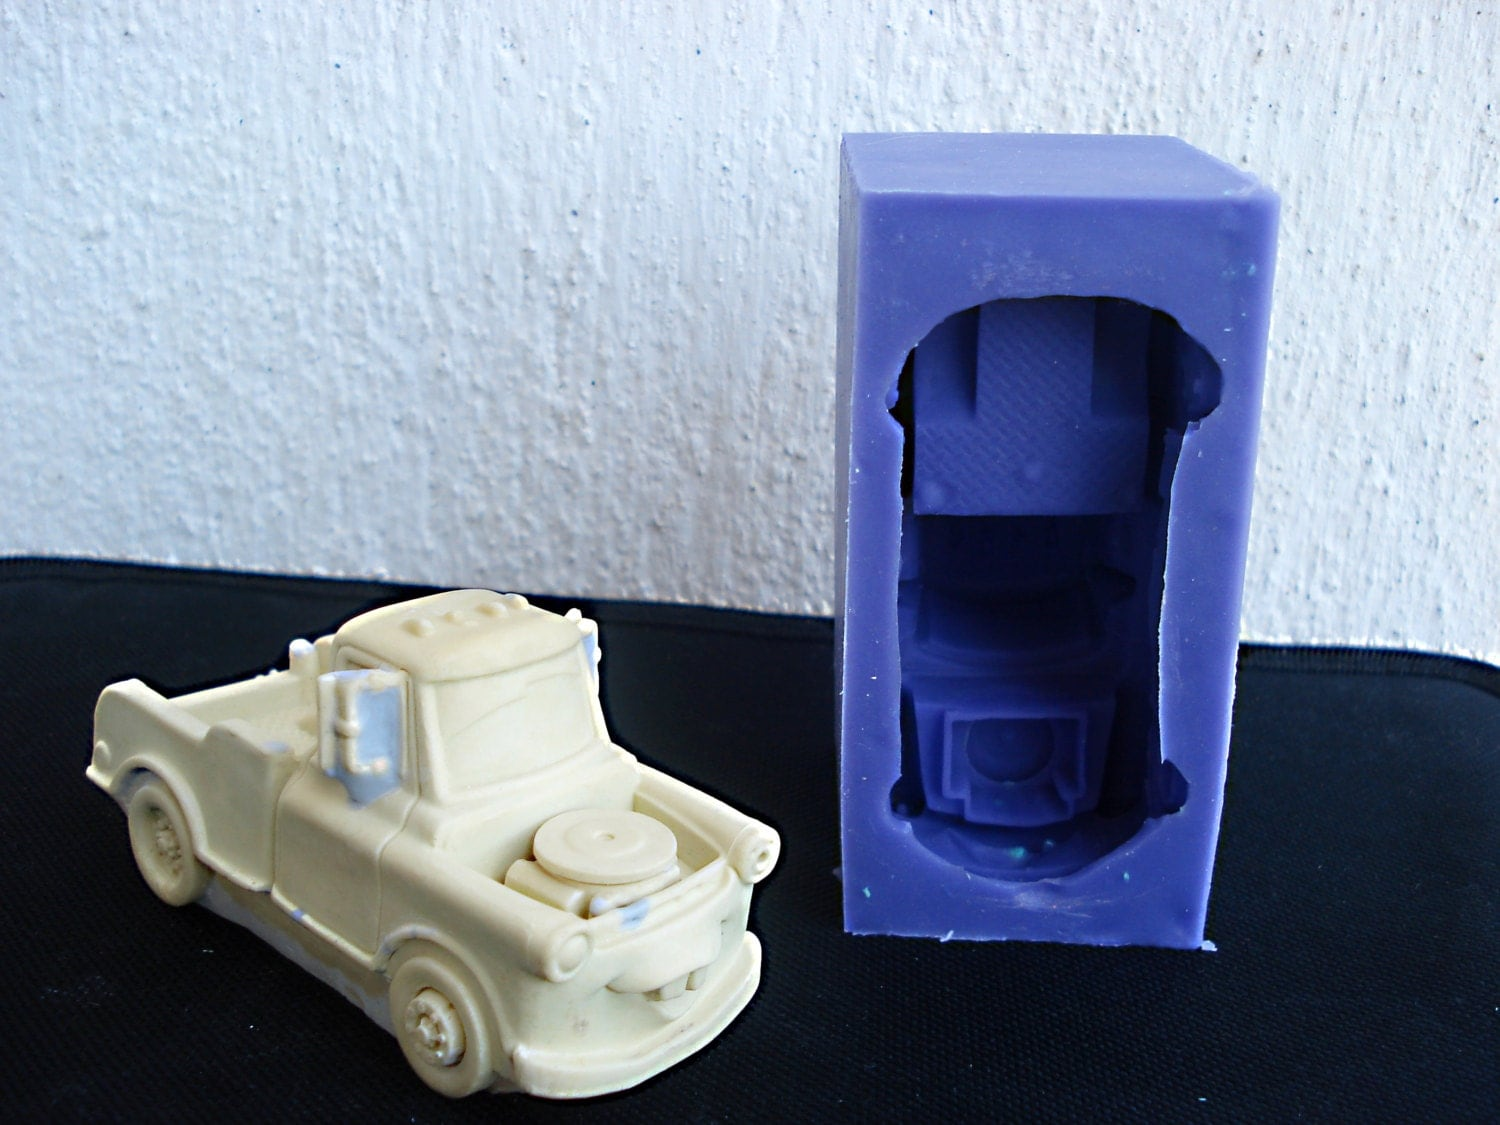 Car Molds For Cake Decorating : Silicone Mould MATER CARS Sugarcraft Cake Decorating Fondant